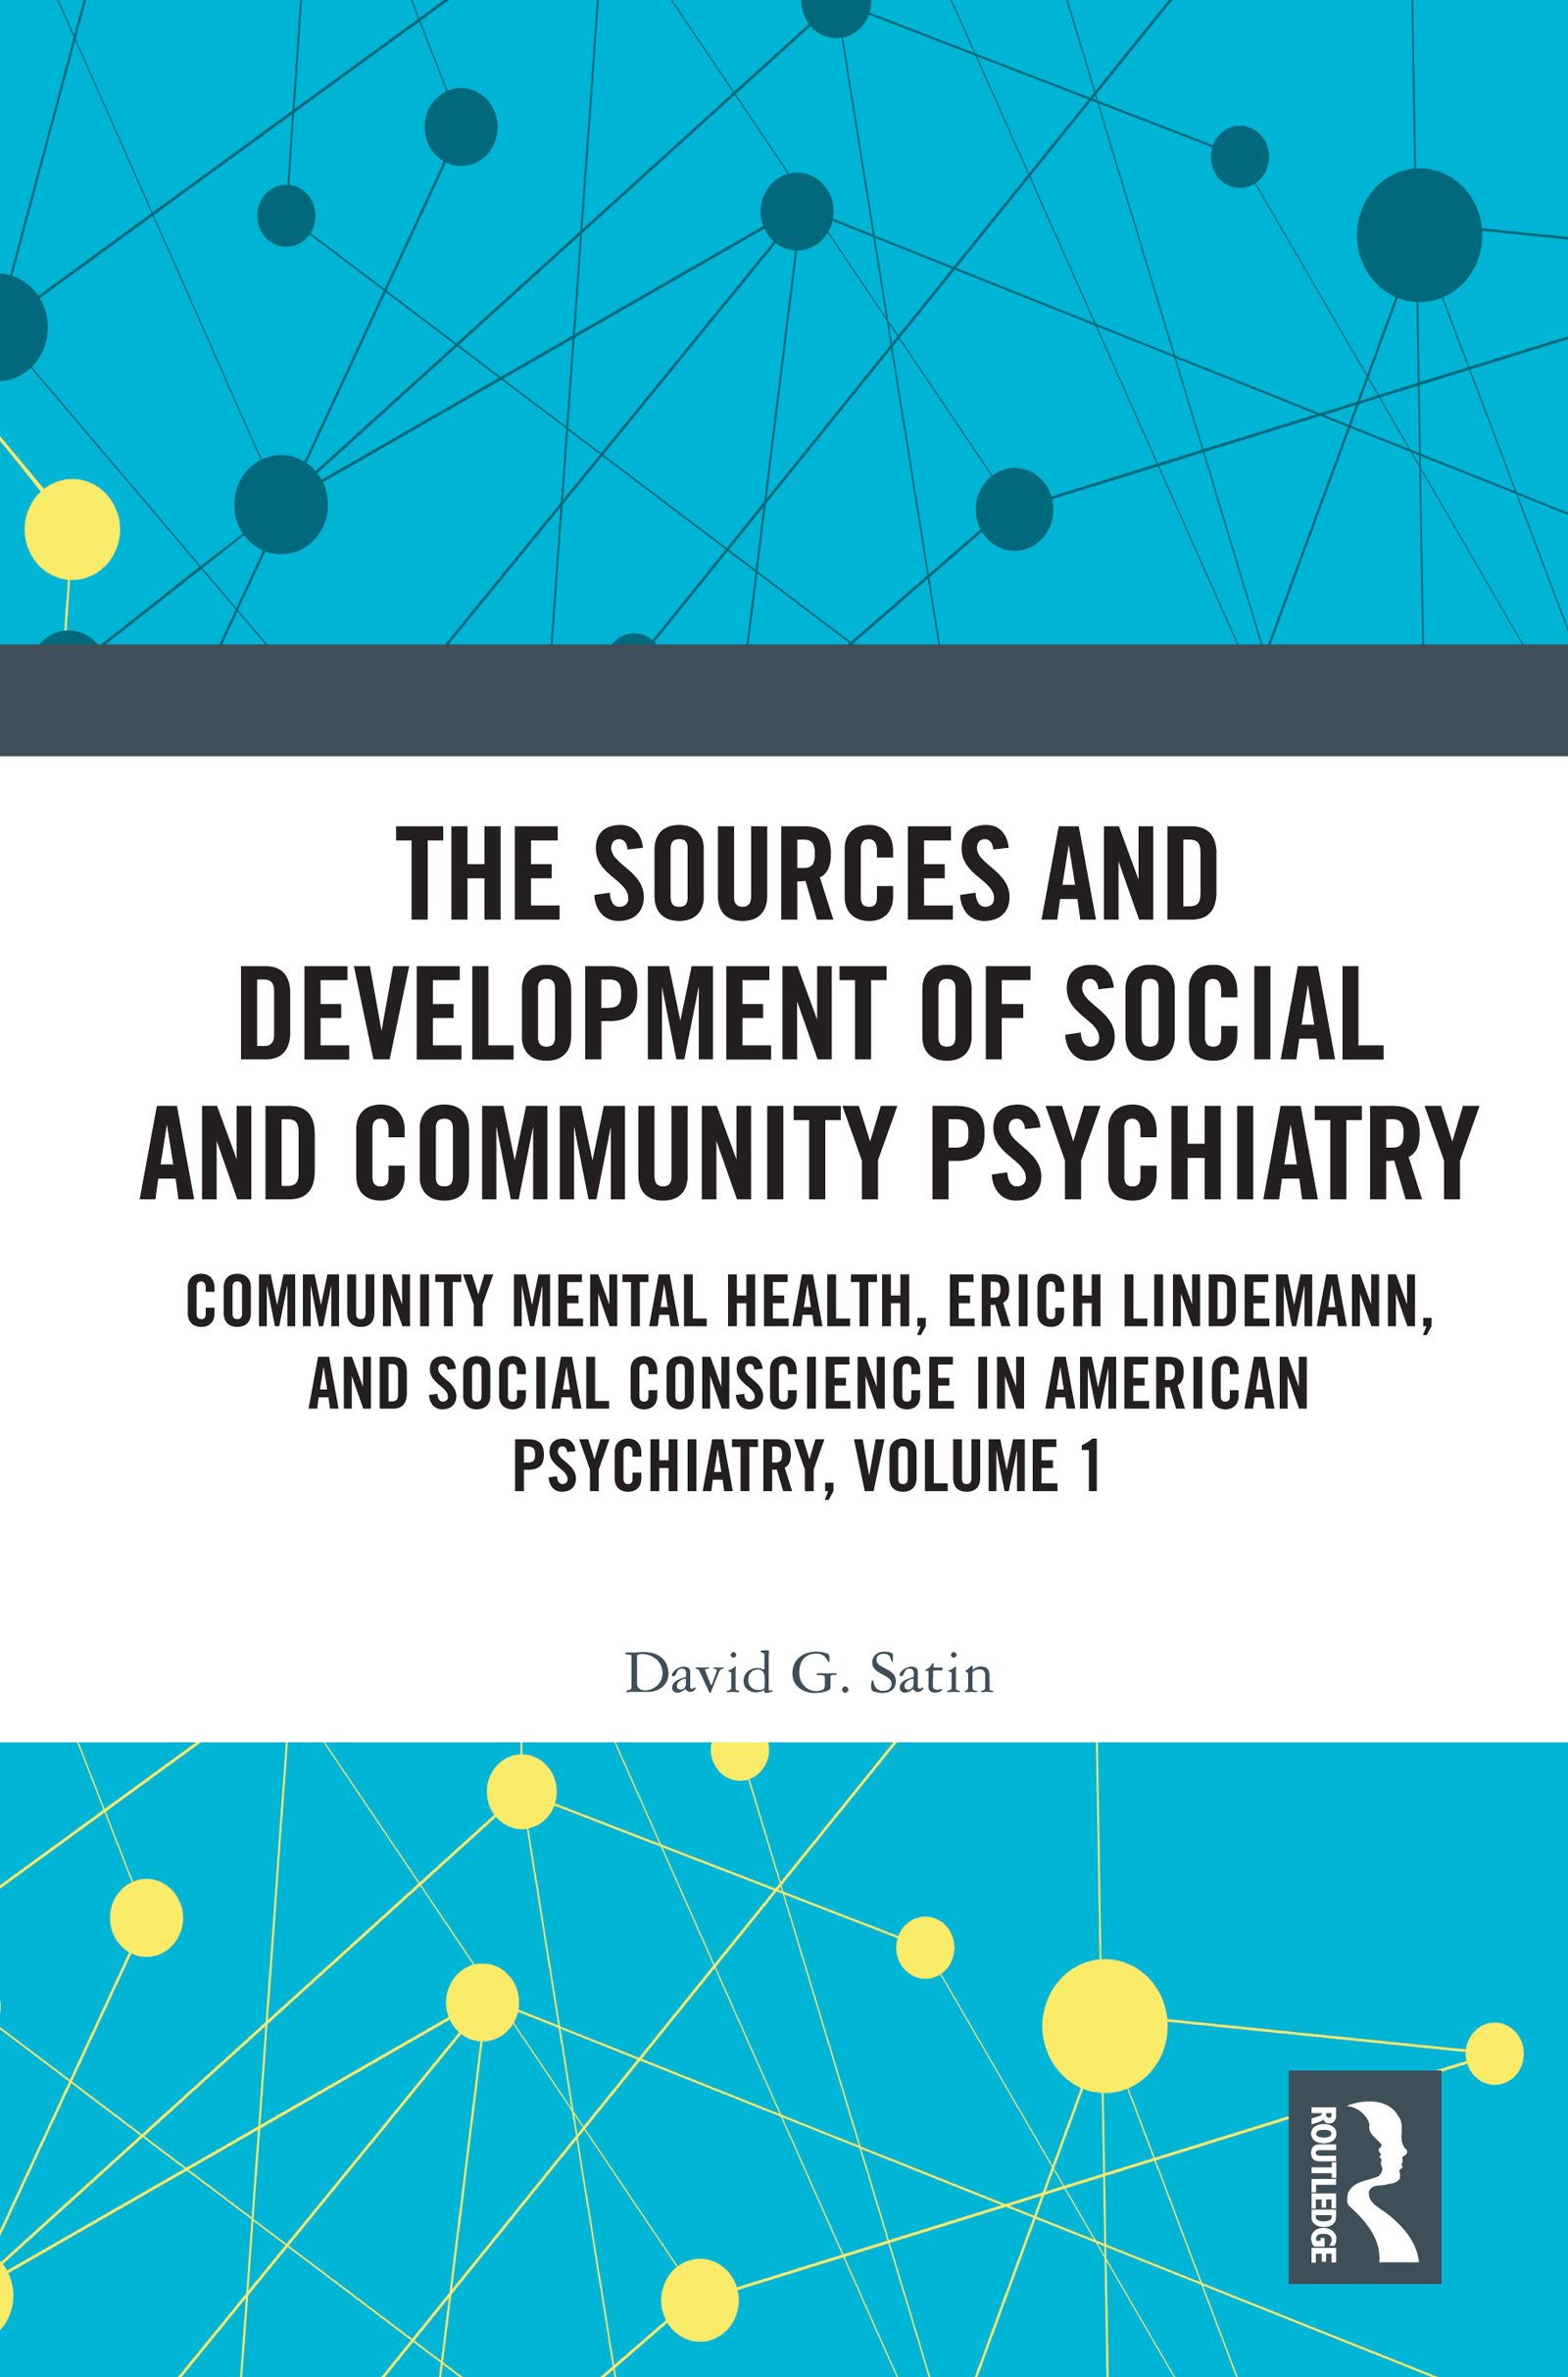 The Sources and Development of Social and Community Psychiatry